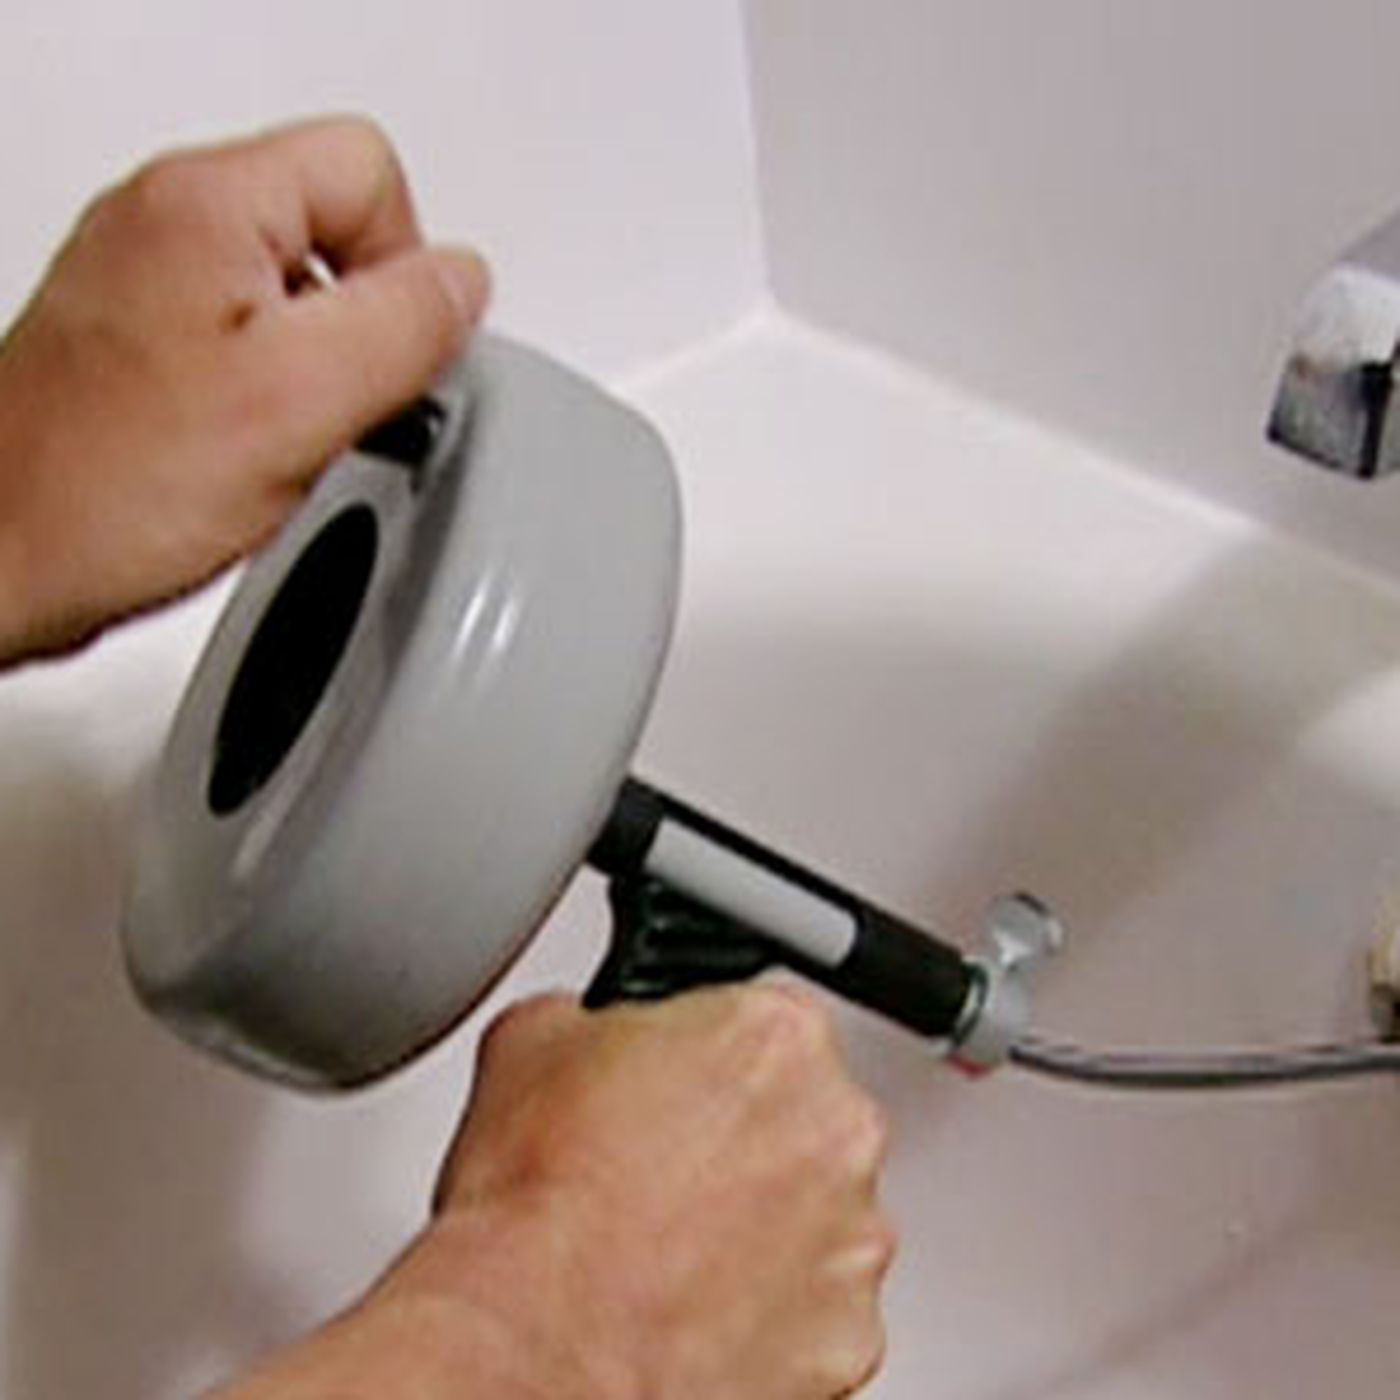 How To Clear A Clogged Bathtub Drain This Old House